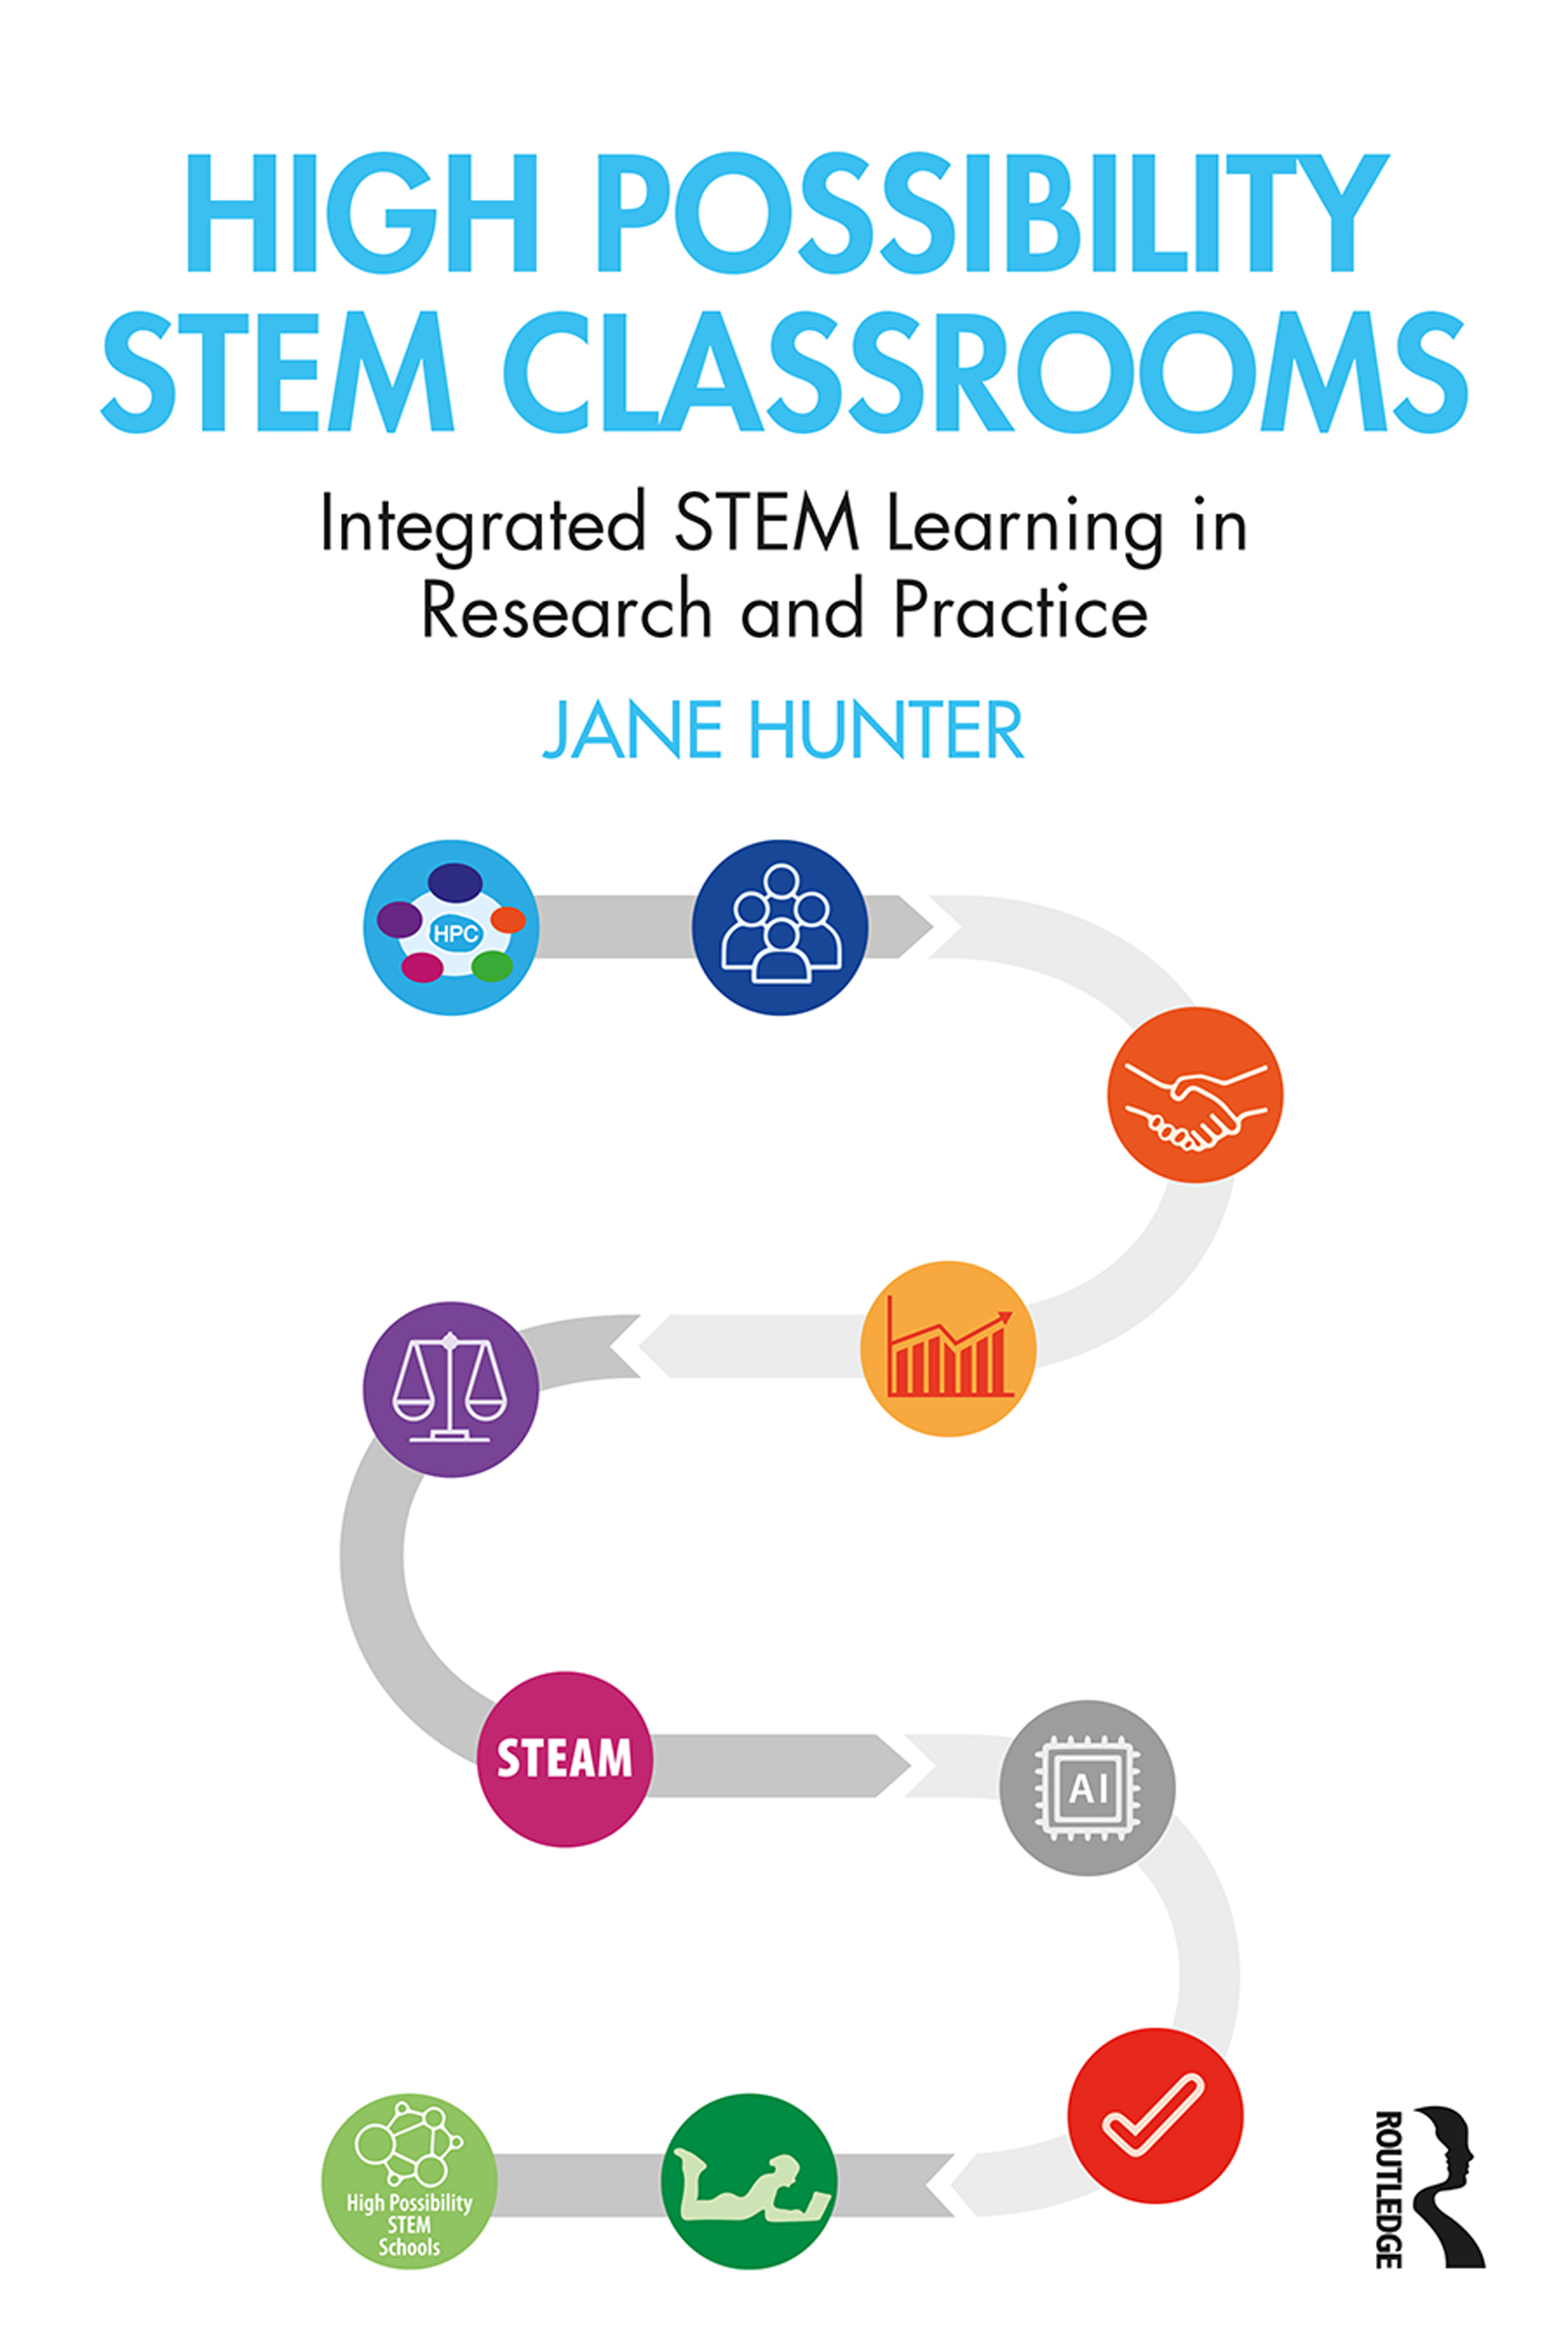 Models and Approaches to STEM Education in Schools